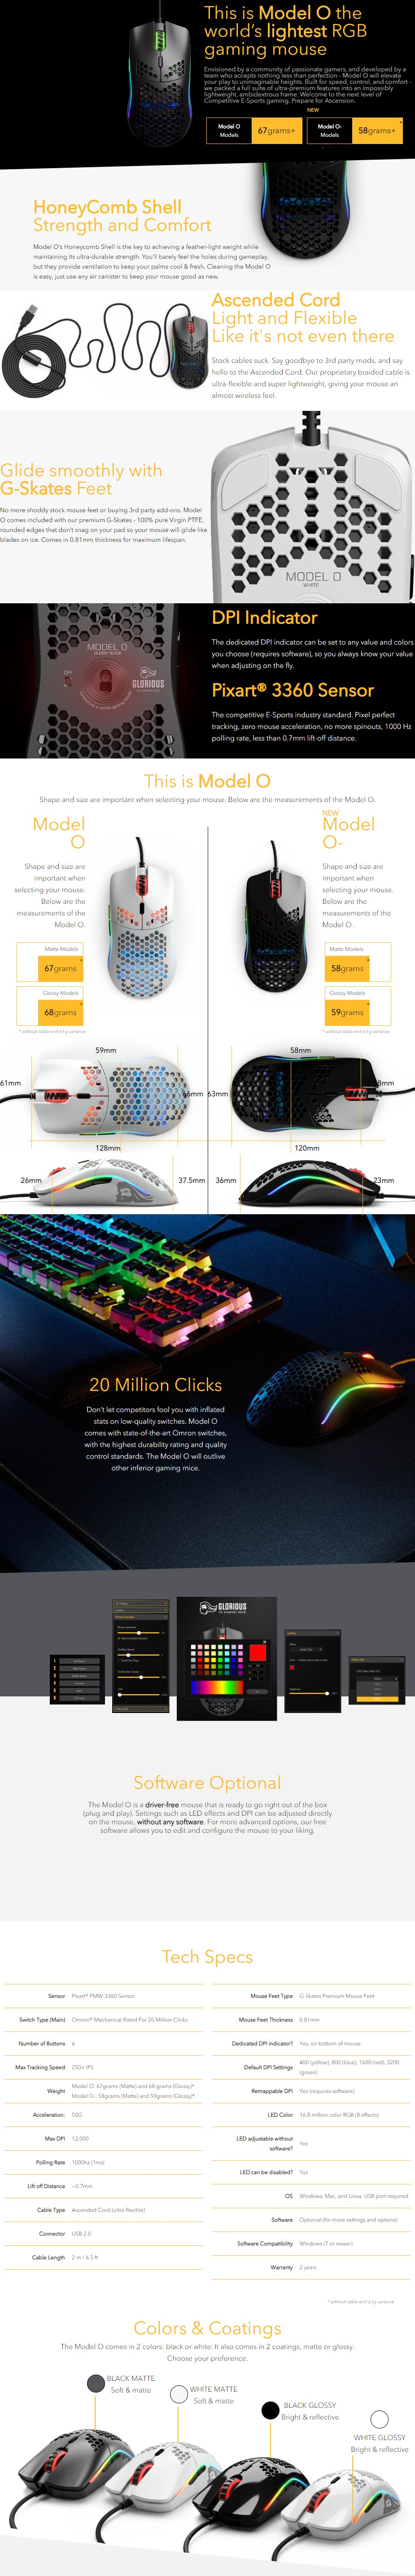 Glorious Model O- Gaming Mouse - Matte Black - Desktop Overview 1